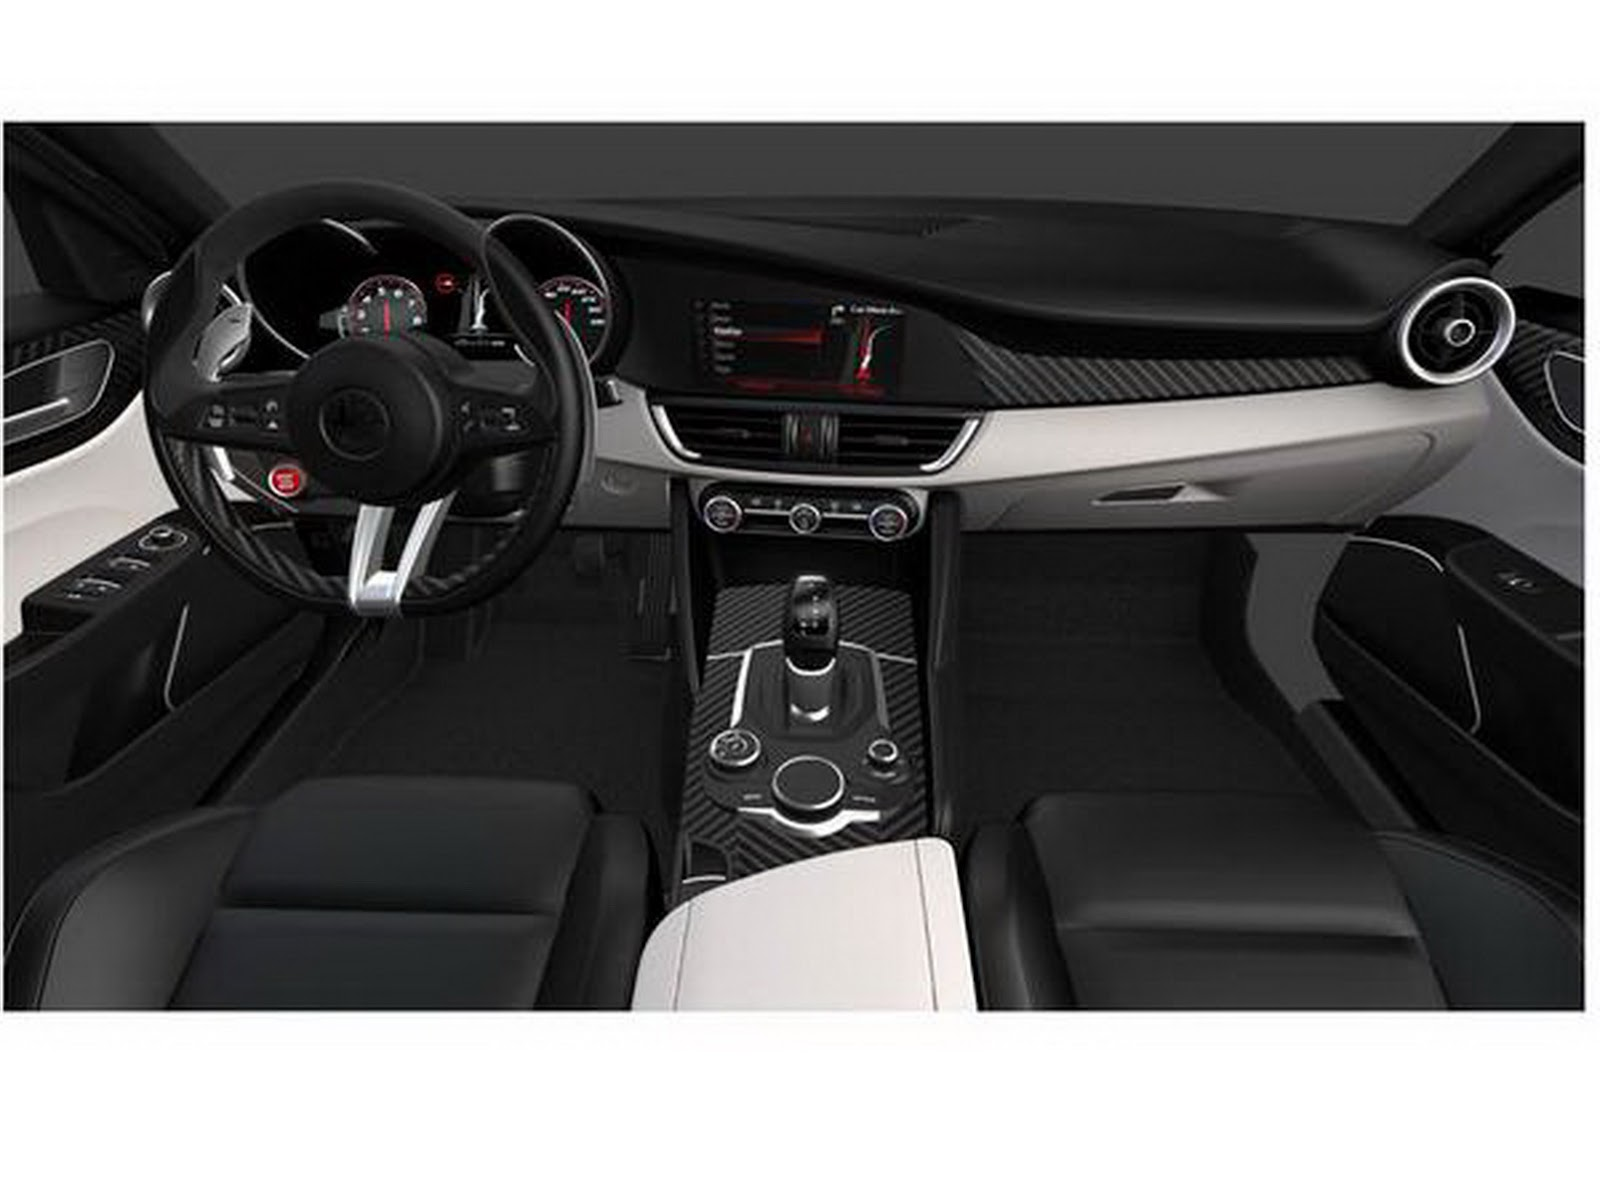 superb-design-of-the-white-and-black-dash-added-with-black-seats-as-the-alfa-romeo-giulia-2016-interior-ideas